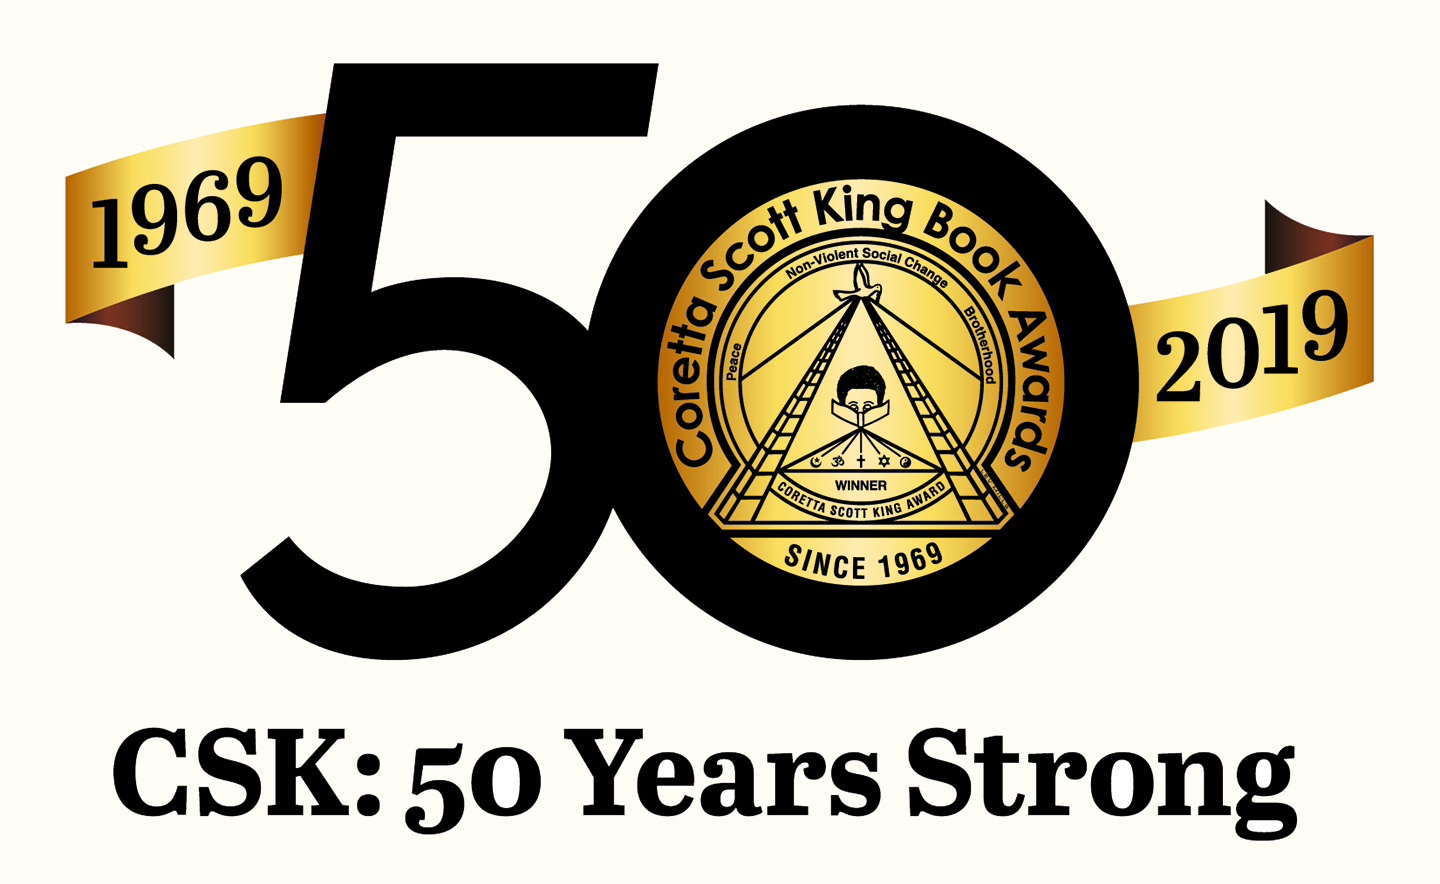 CSK: 50 Years Strong